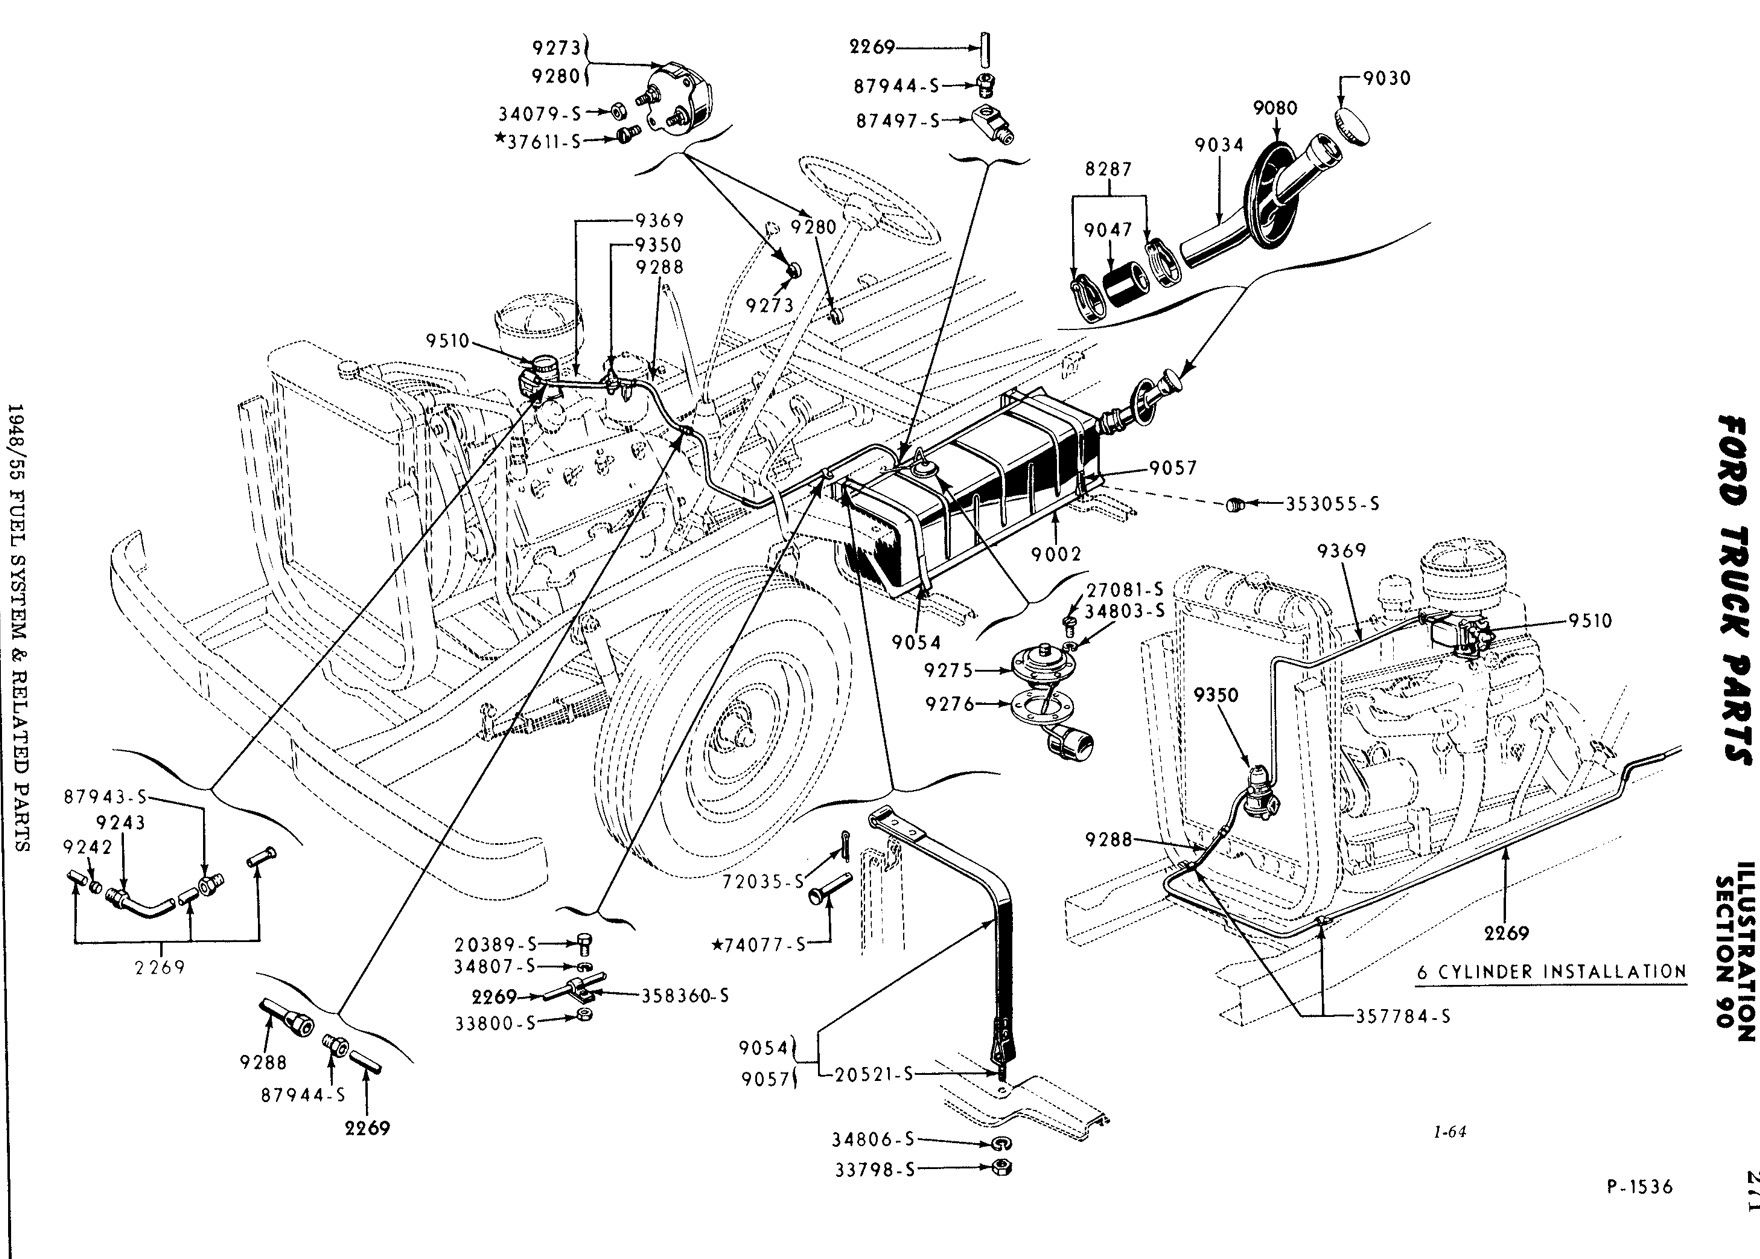 Flathead Drawings Electrical Parts Wiring Diagram Images